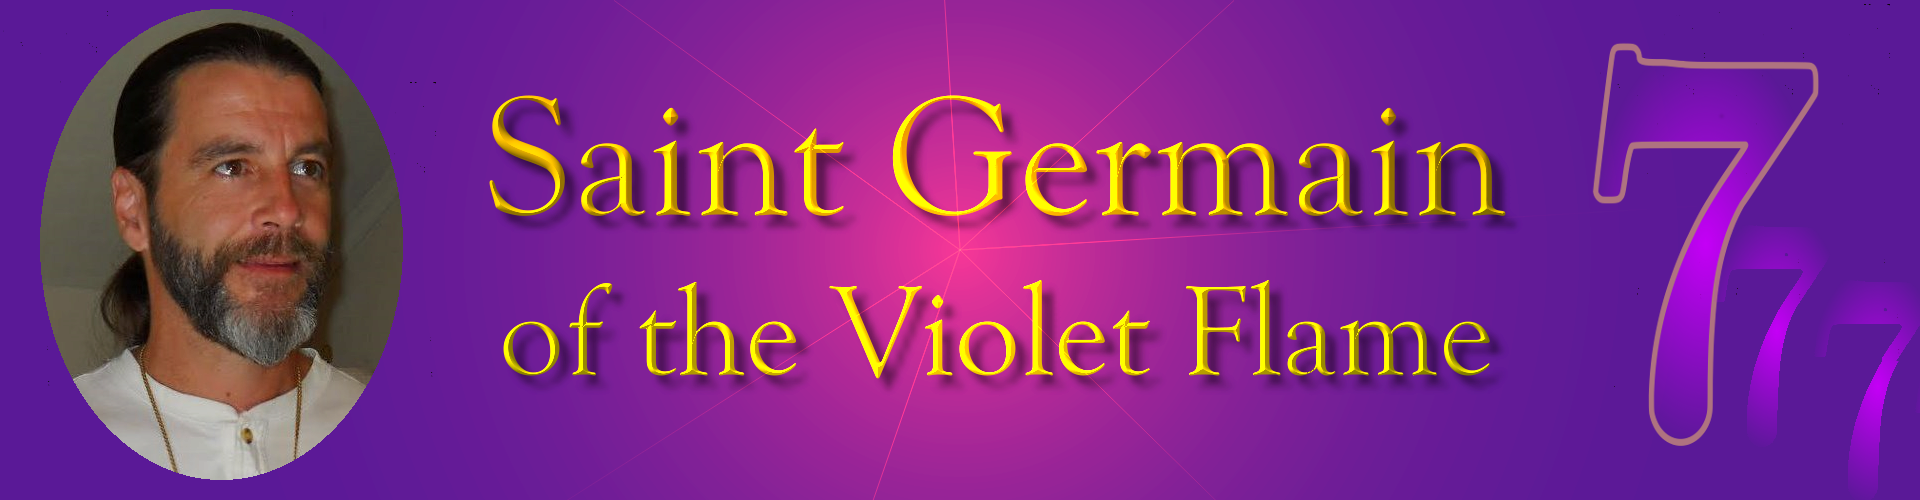 Saint Germain of the Violet Flame